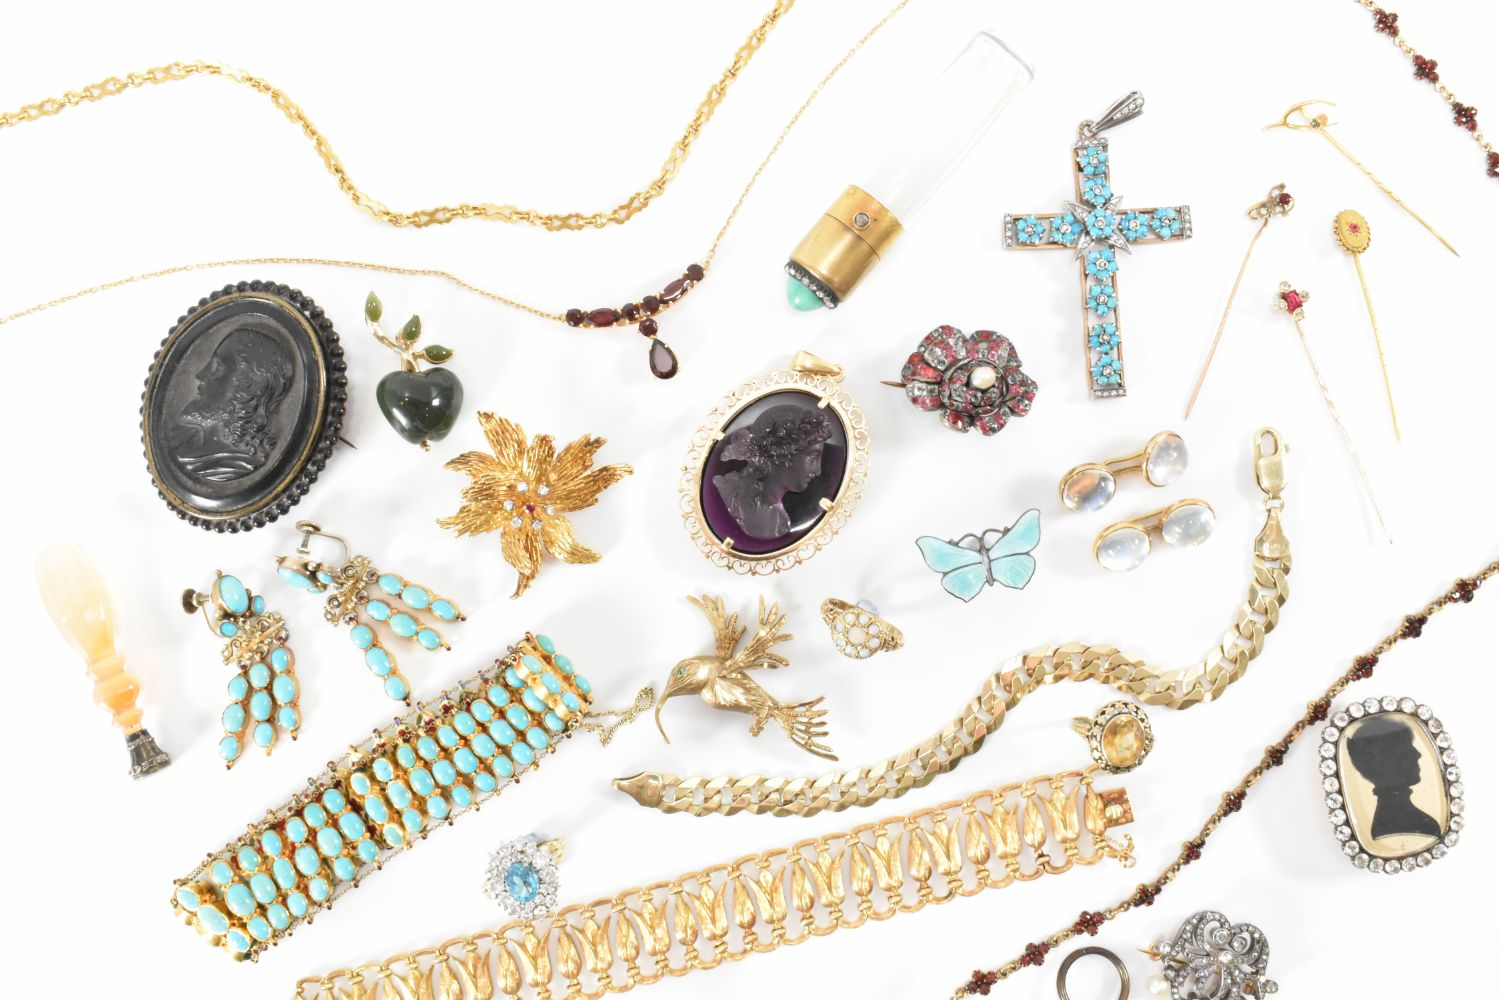 Antique & Vintage Jewellery, Watch, Gold, Silver & Mineral Auction